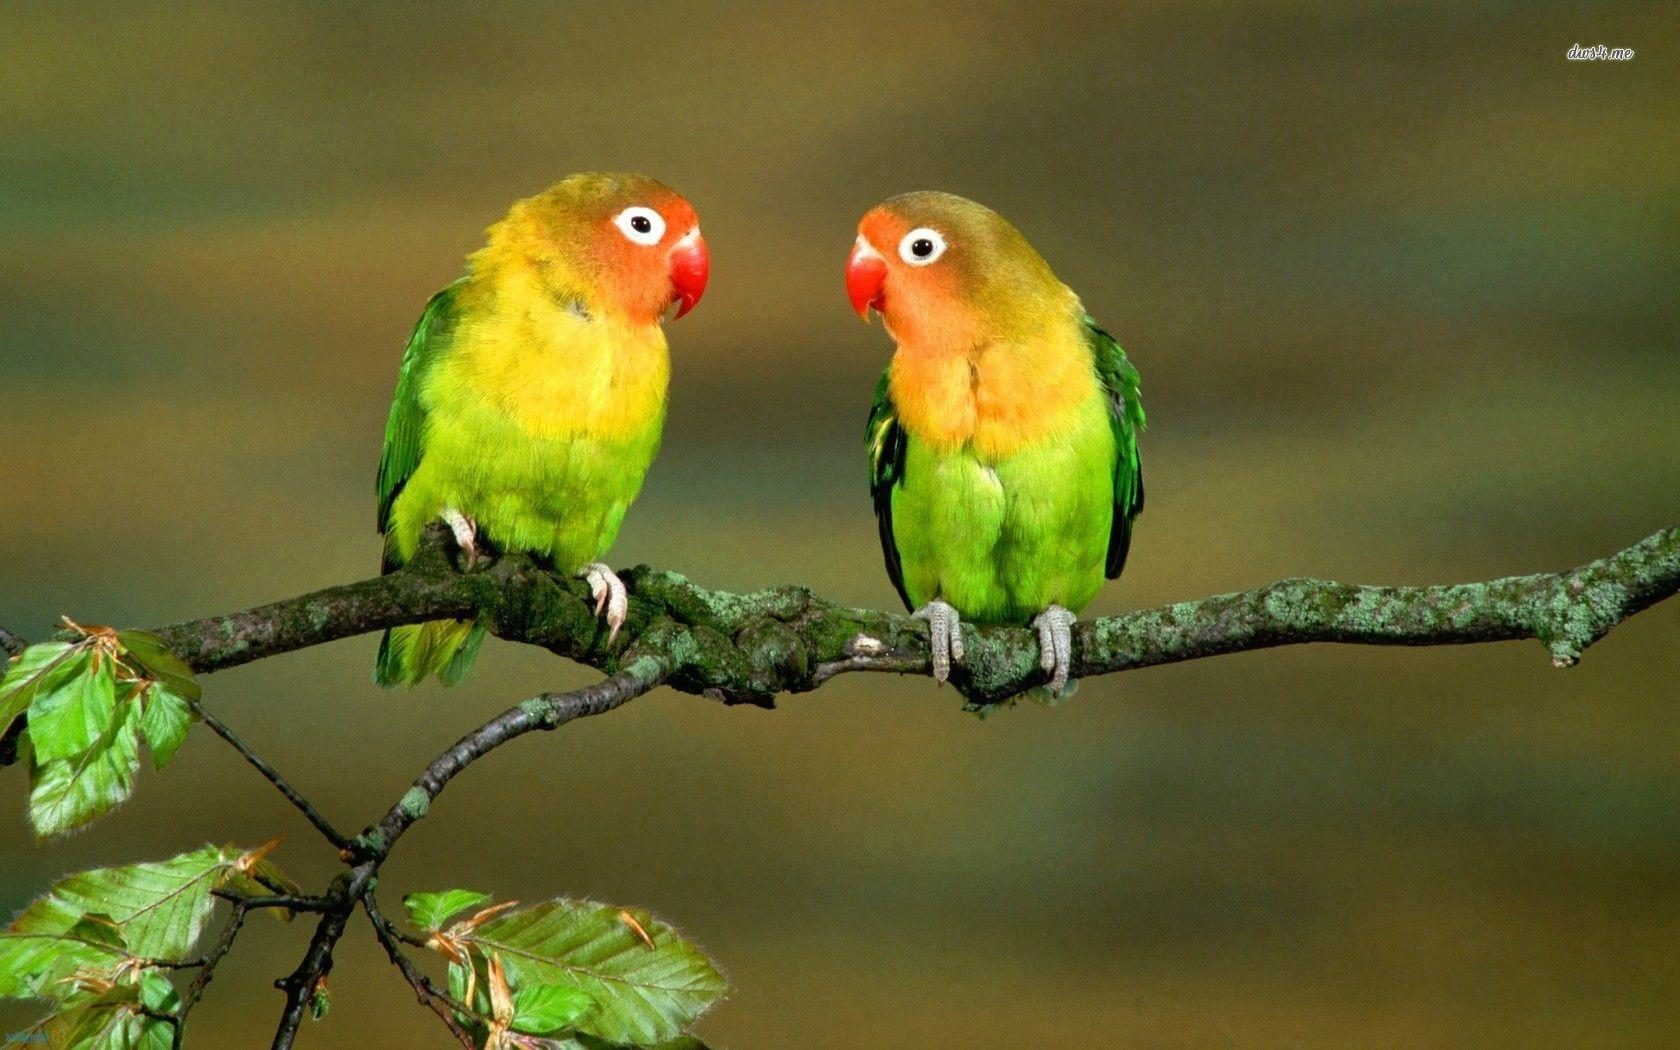 Love Birds Wallpaper Images : Lovebirds Wallpapers - Wallpaper cave